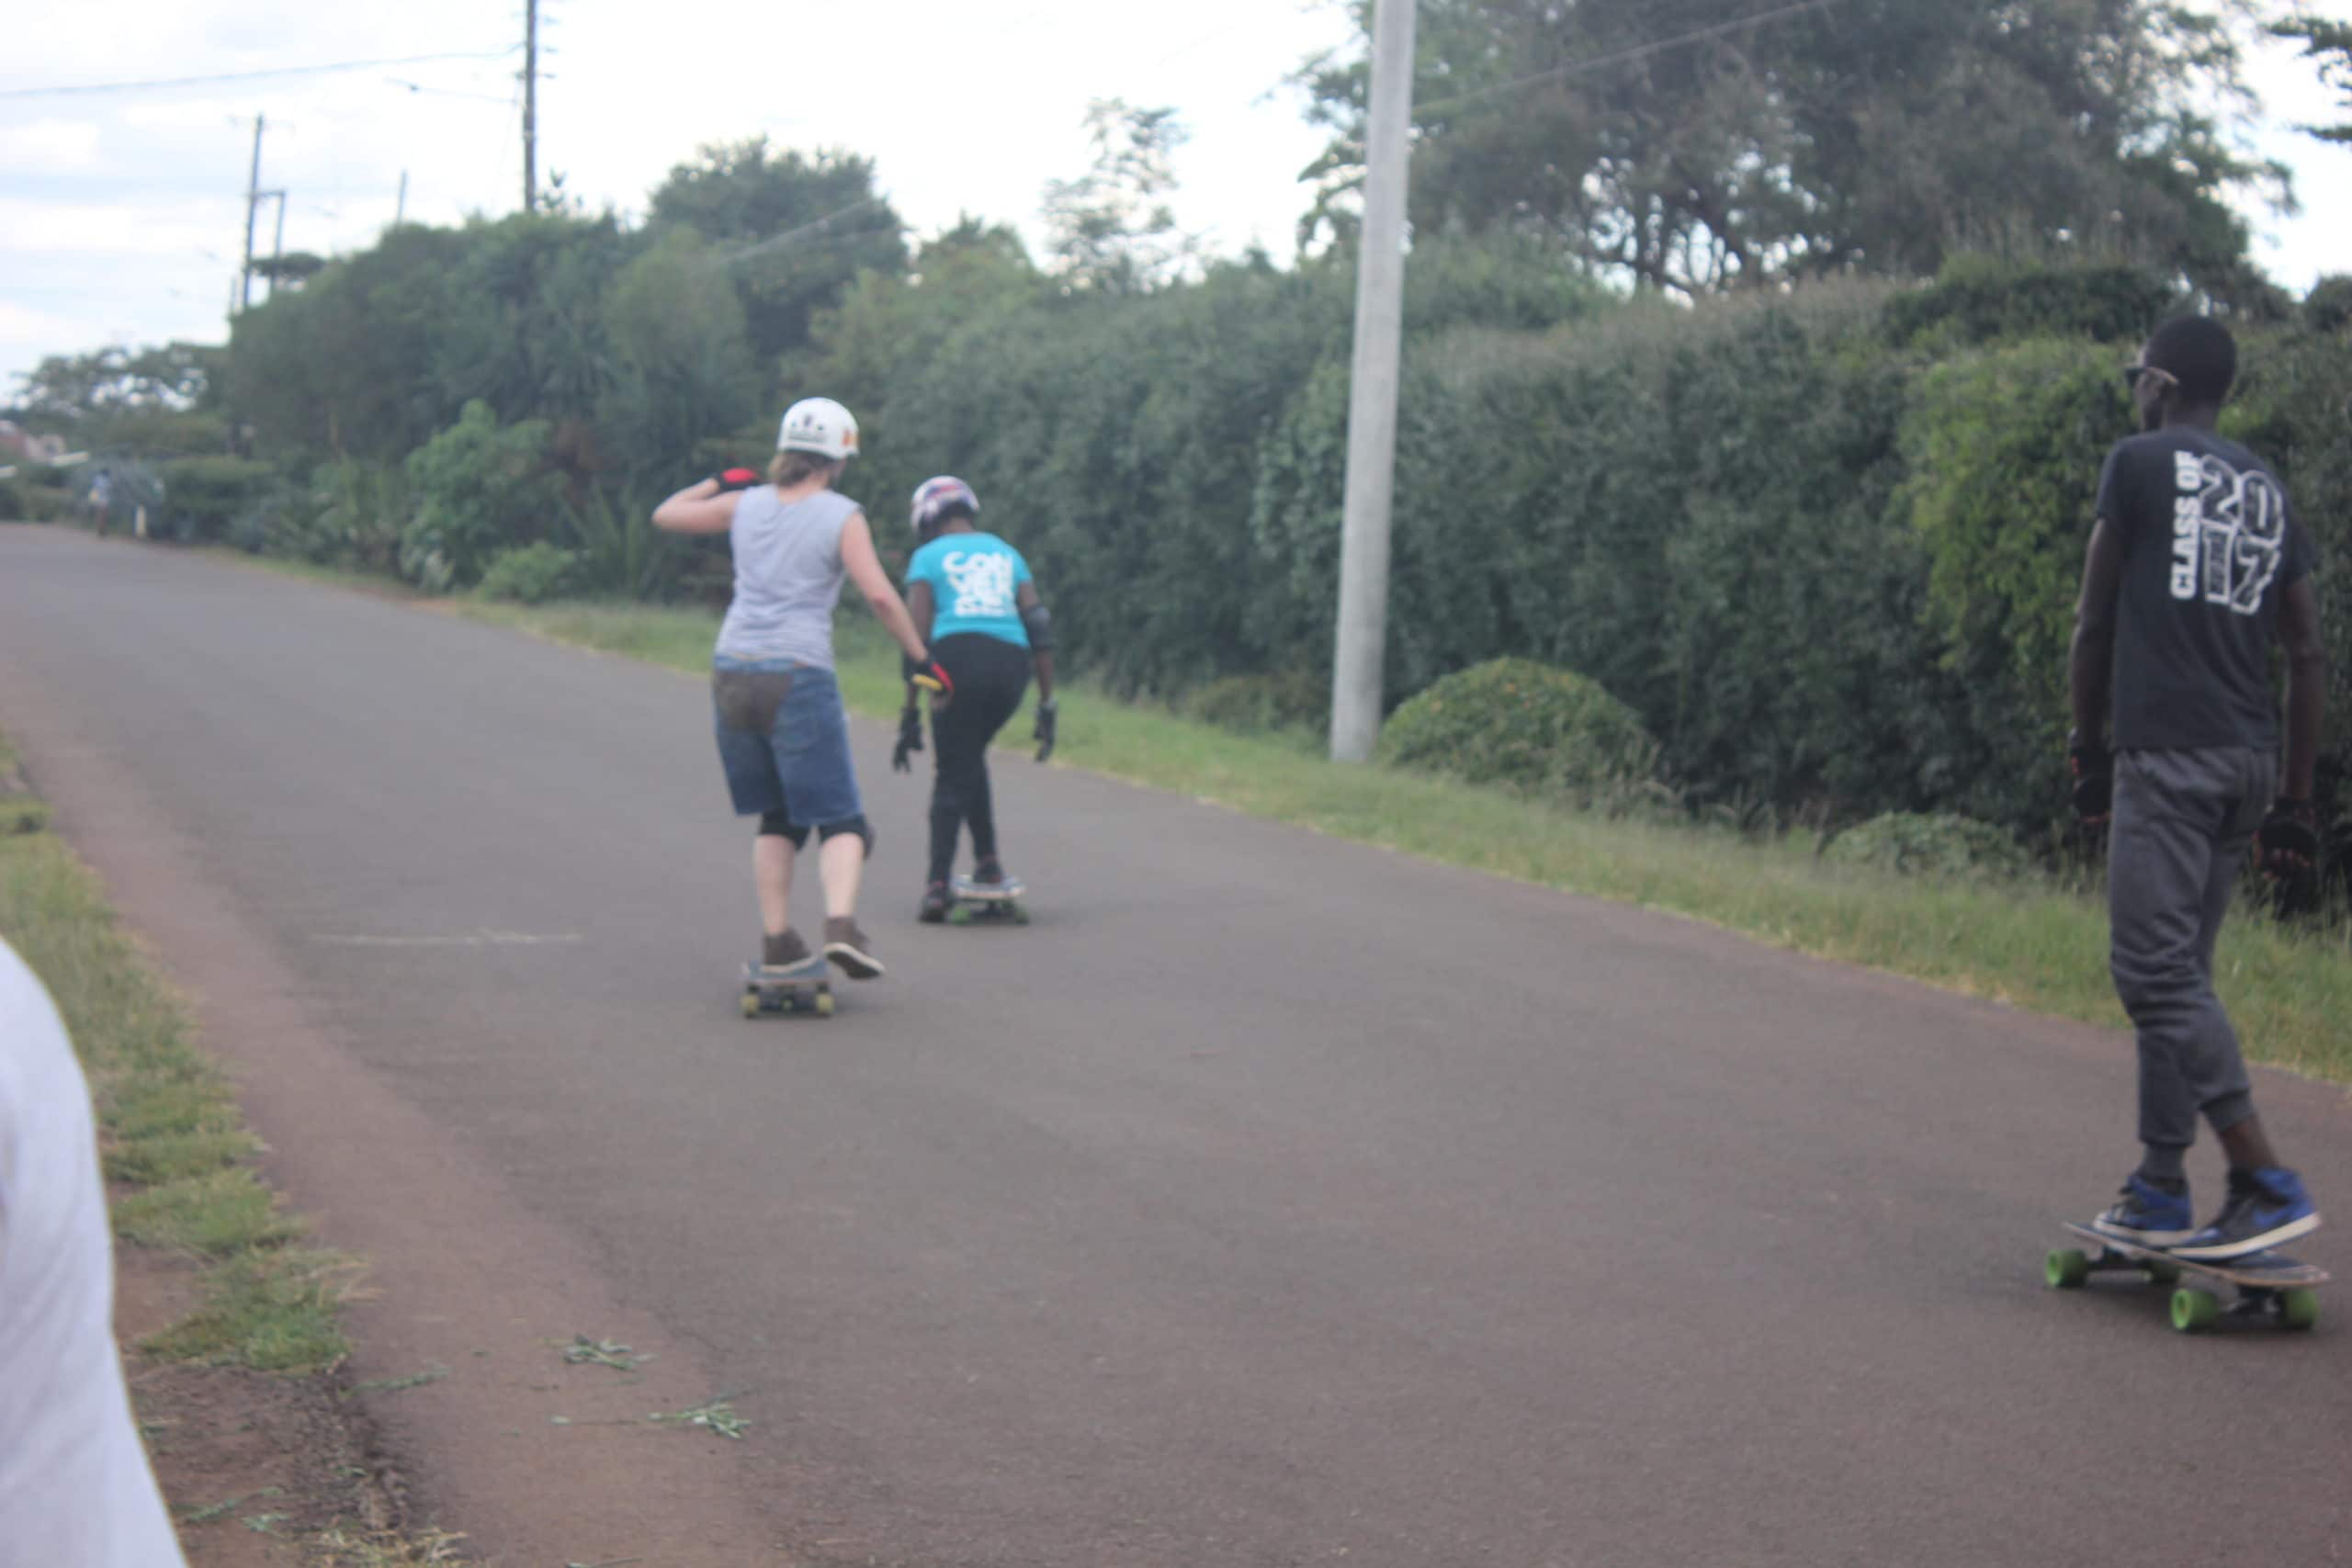 Christa (a Kenyan longboard) learning to skate